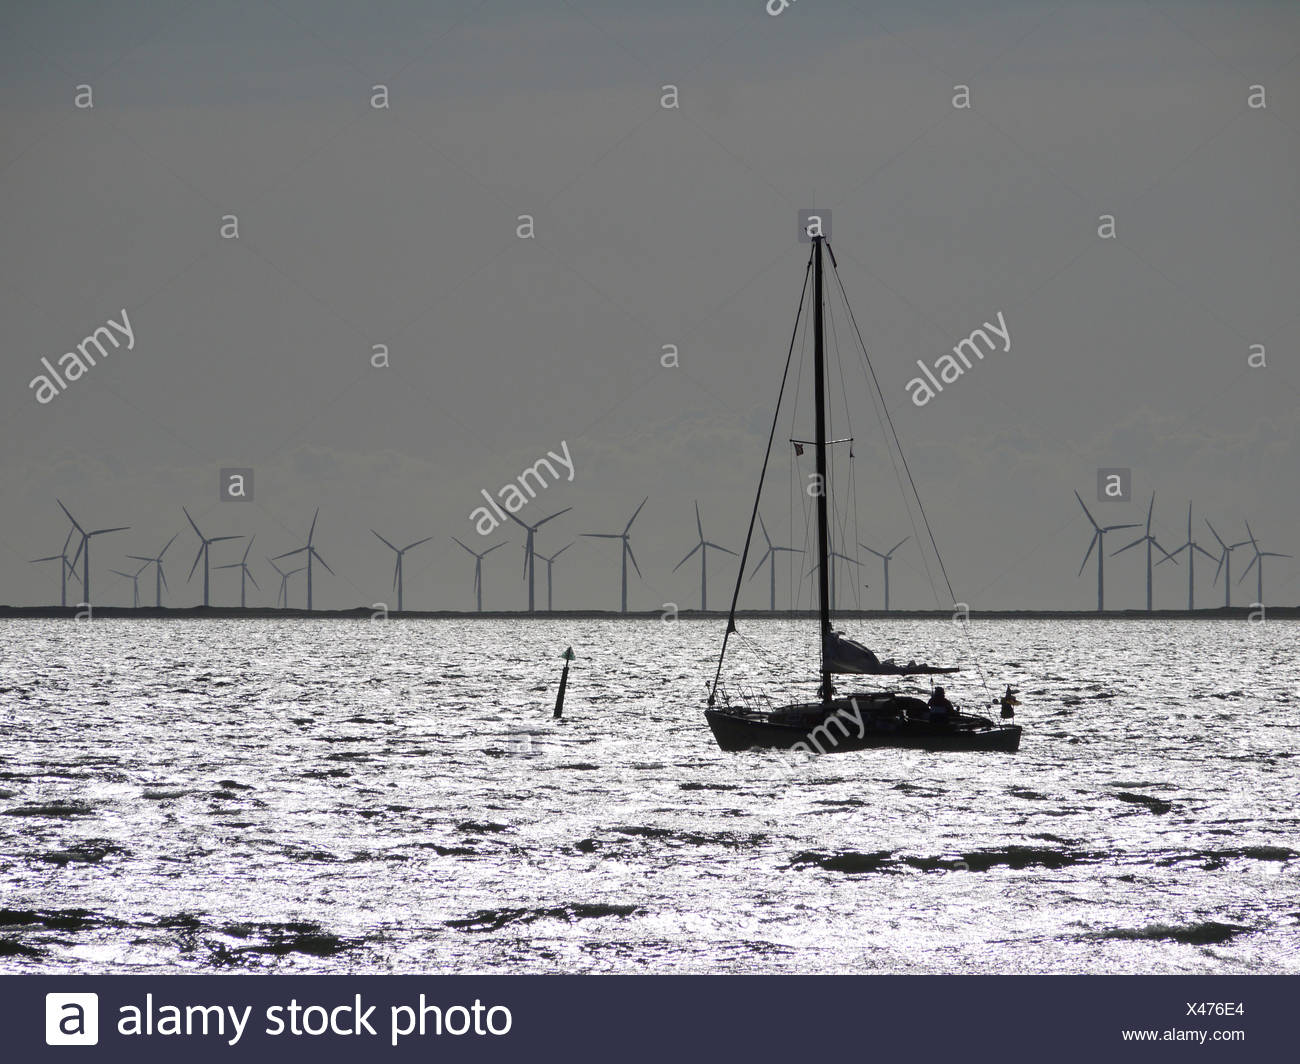 sailing in the baltic sea - Stock Image